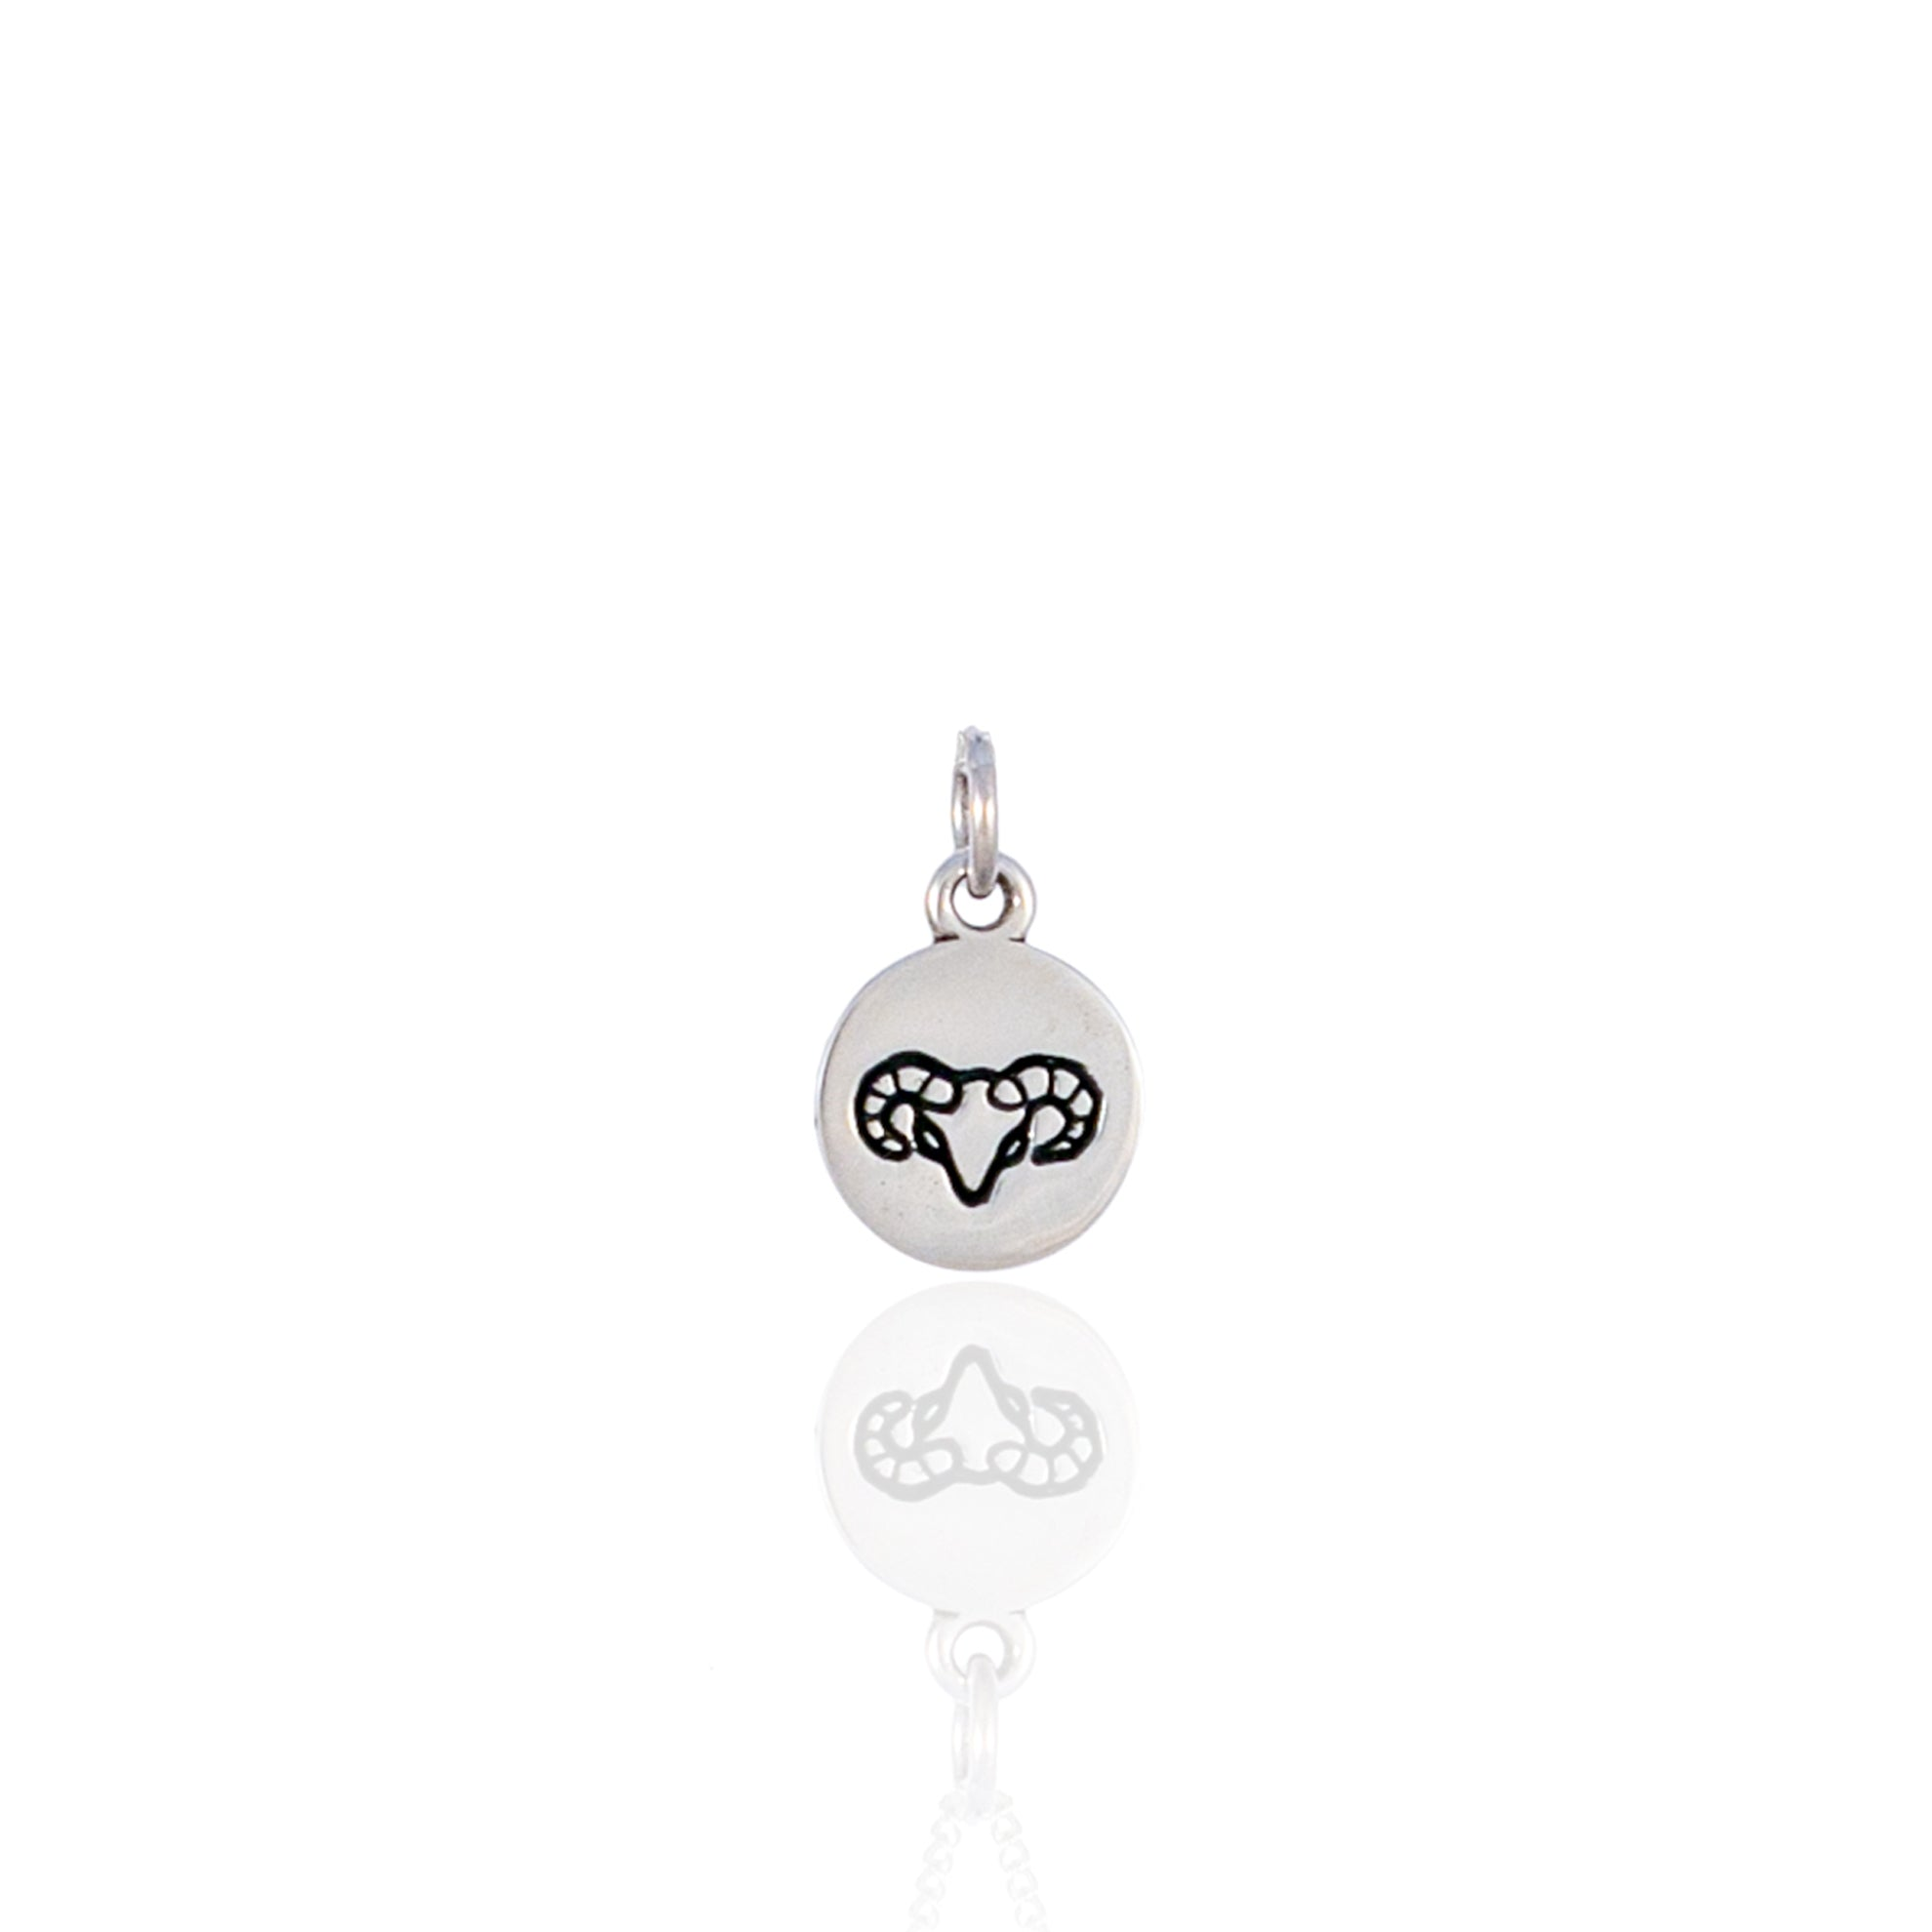 Aries Mini Zodiac Charm - Silver